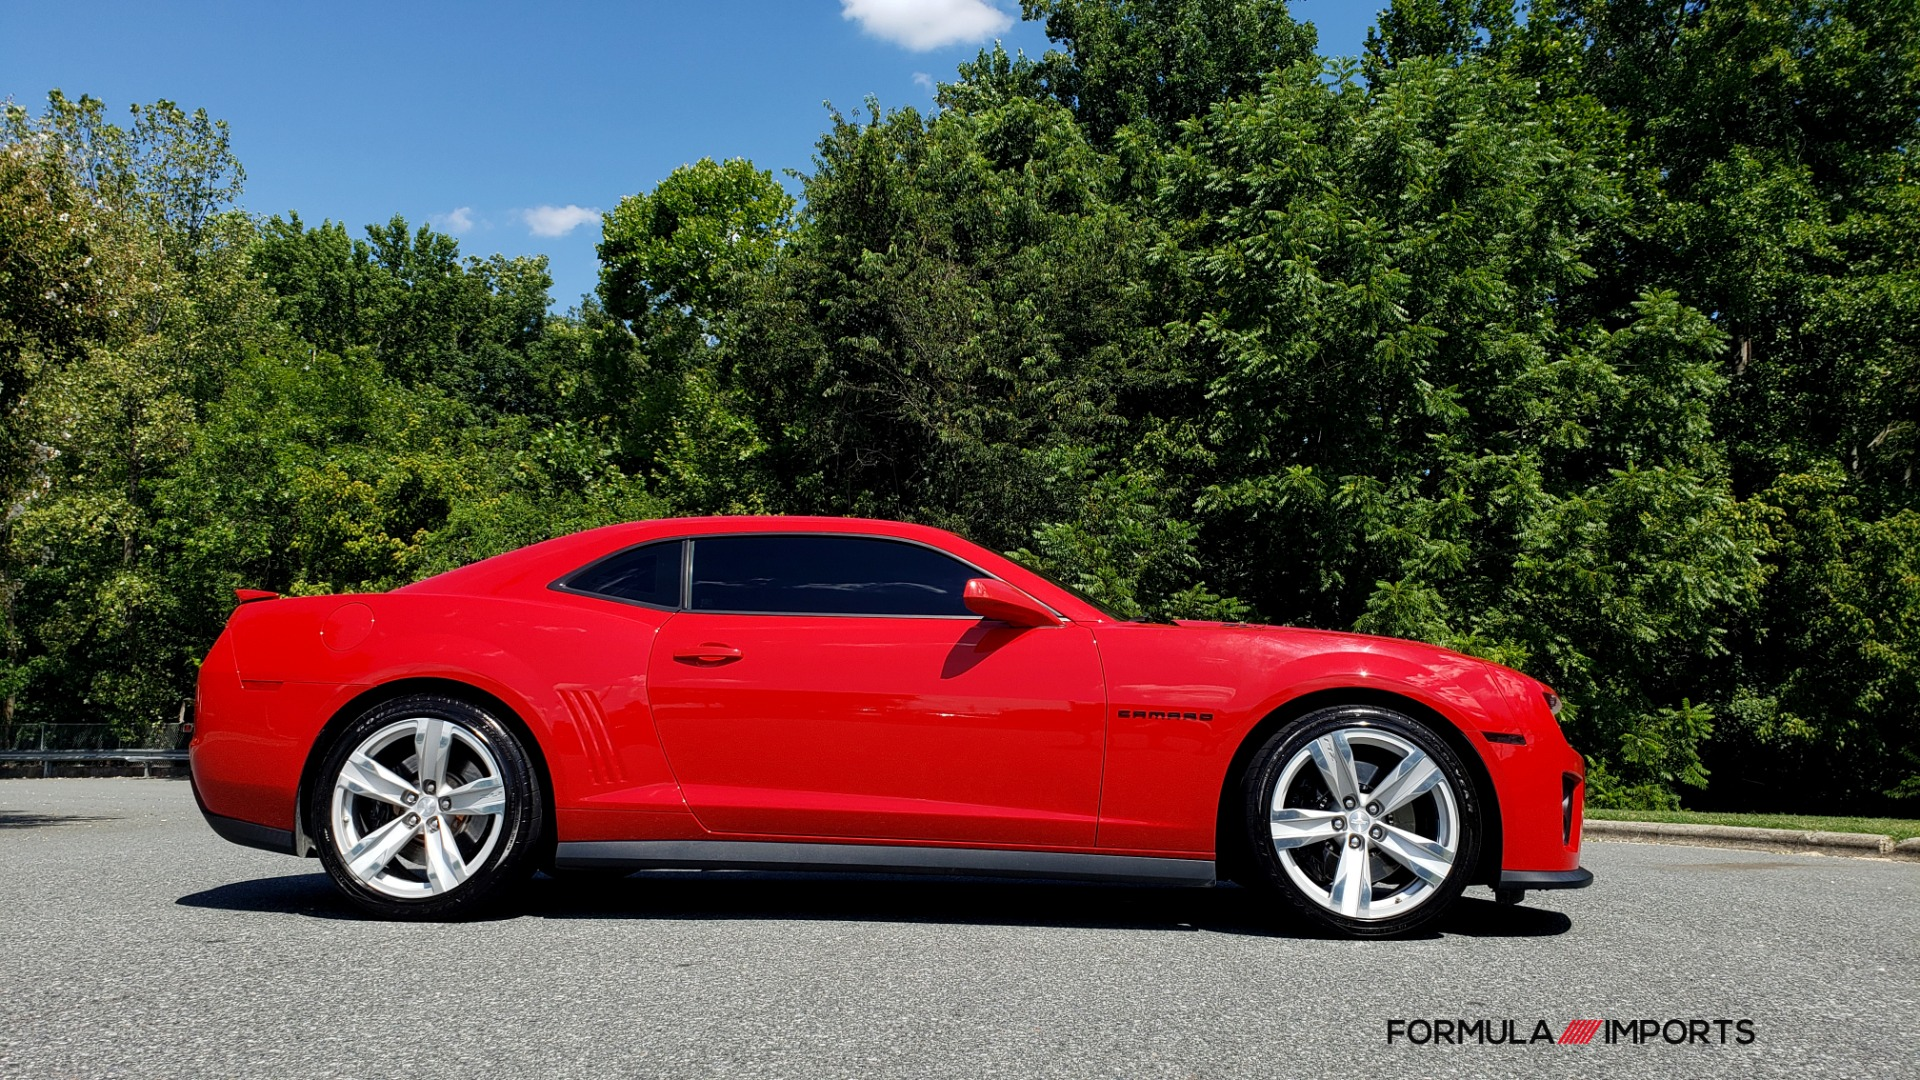 Used 2013 Chevrolet CAMARO ZL1 / 6.2L SUPERCHARGED 580HP / 6-SPD AUTO / NAV / REARVIEW for sale Sold at Formula Imports in Charlotte NC 28227 6